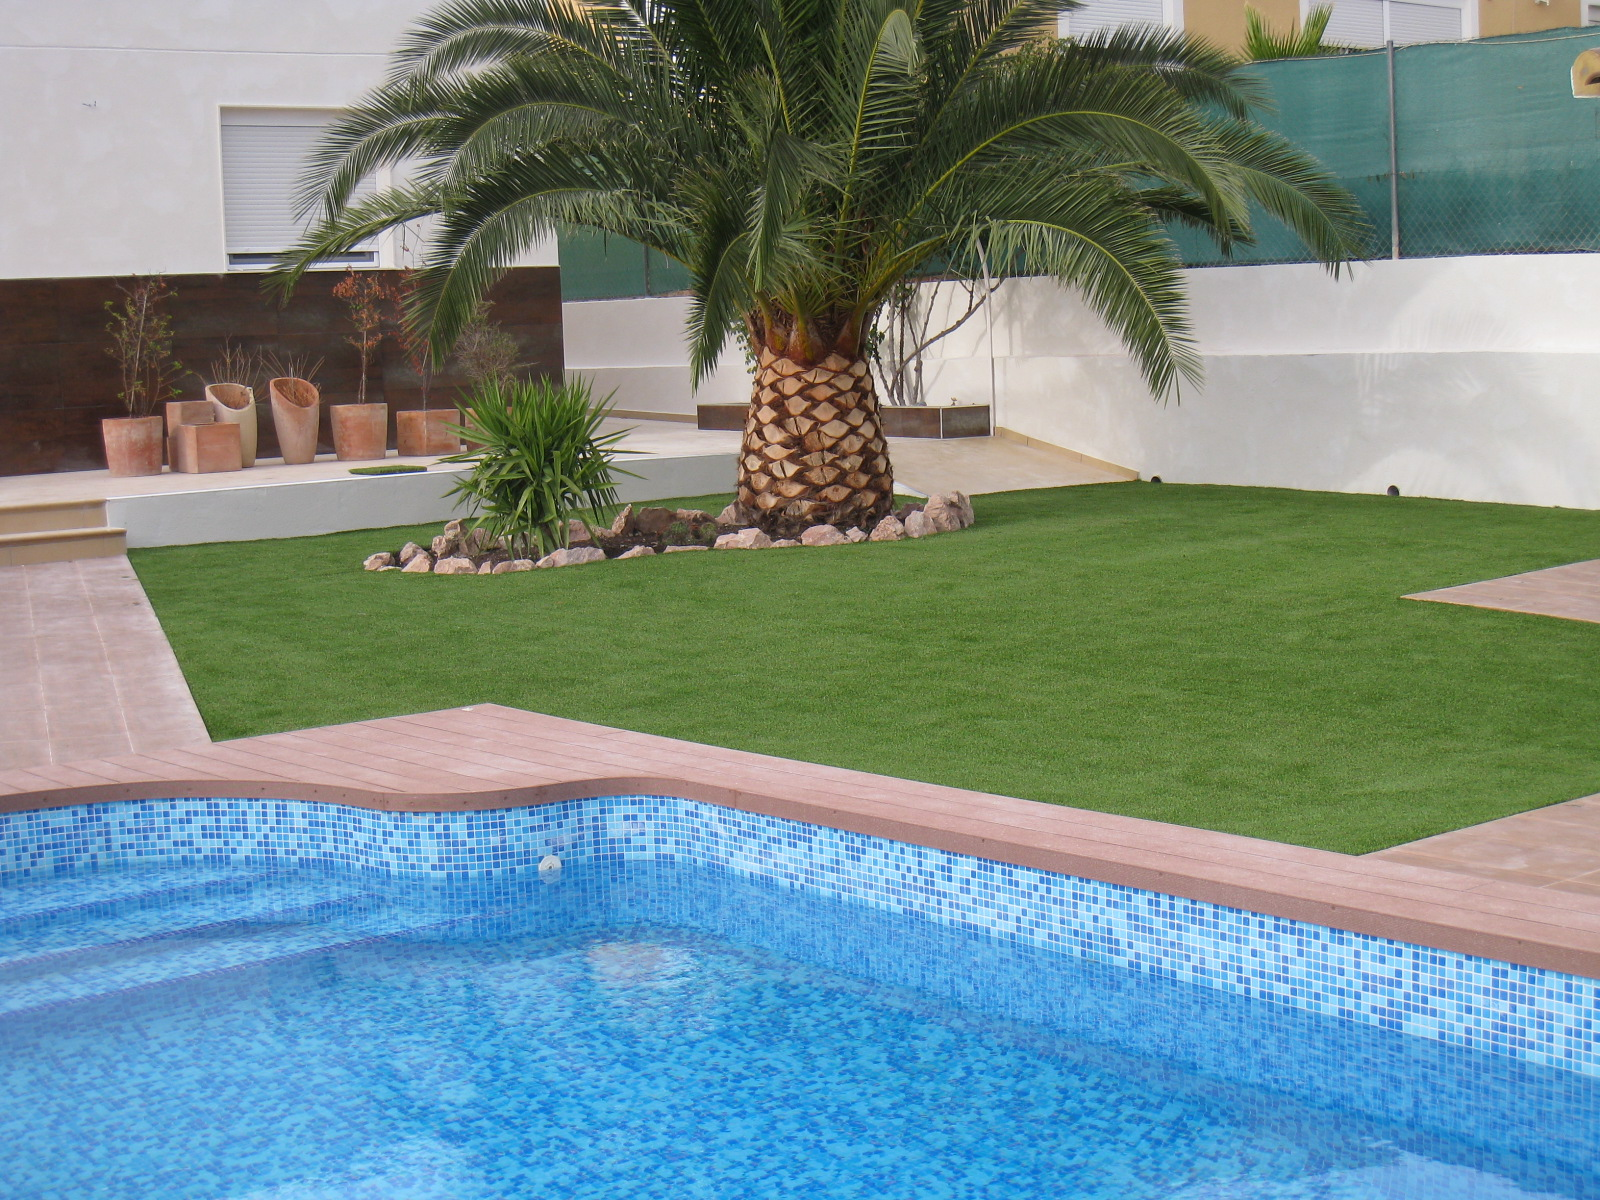 C sped artificial en jardines como elemento decorativo for Piscinas hinchables para jardin